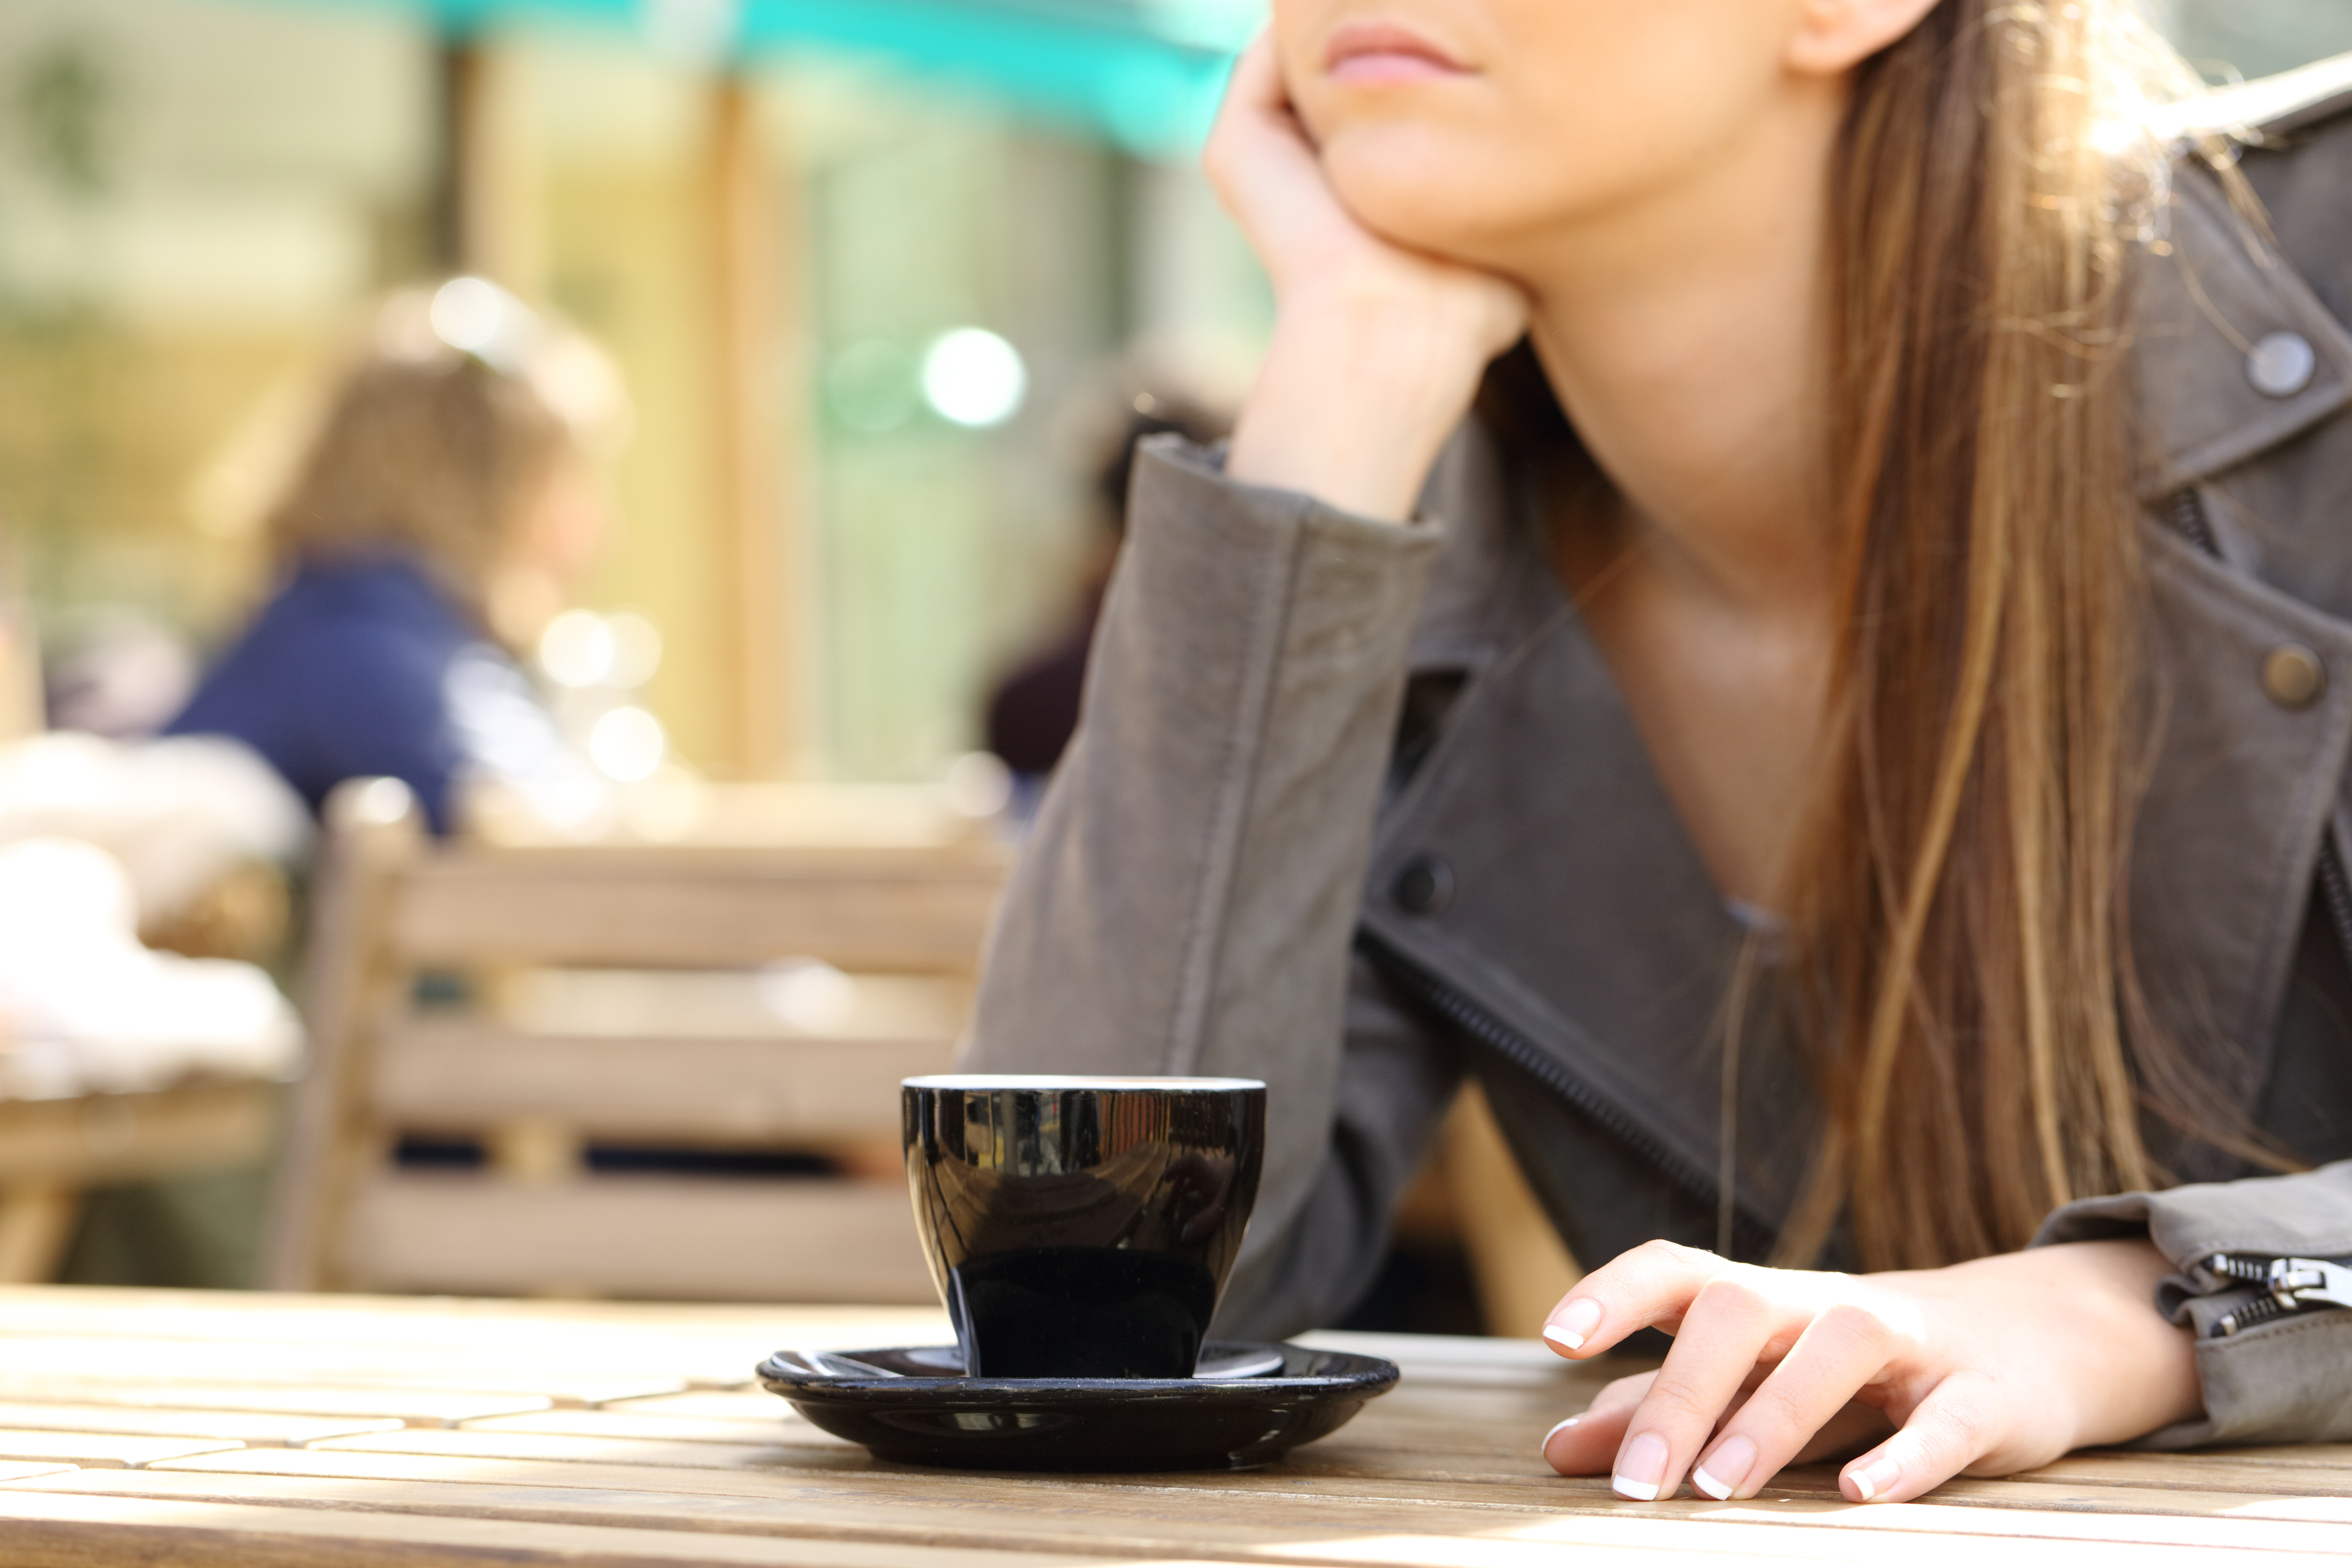 Online Dating: A Dilemma About Being Ghosted?